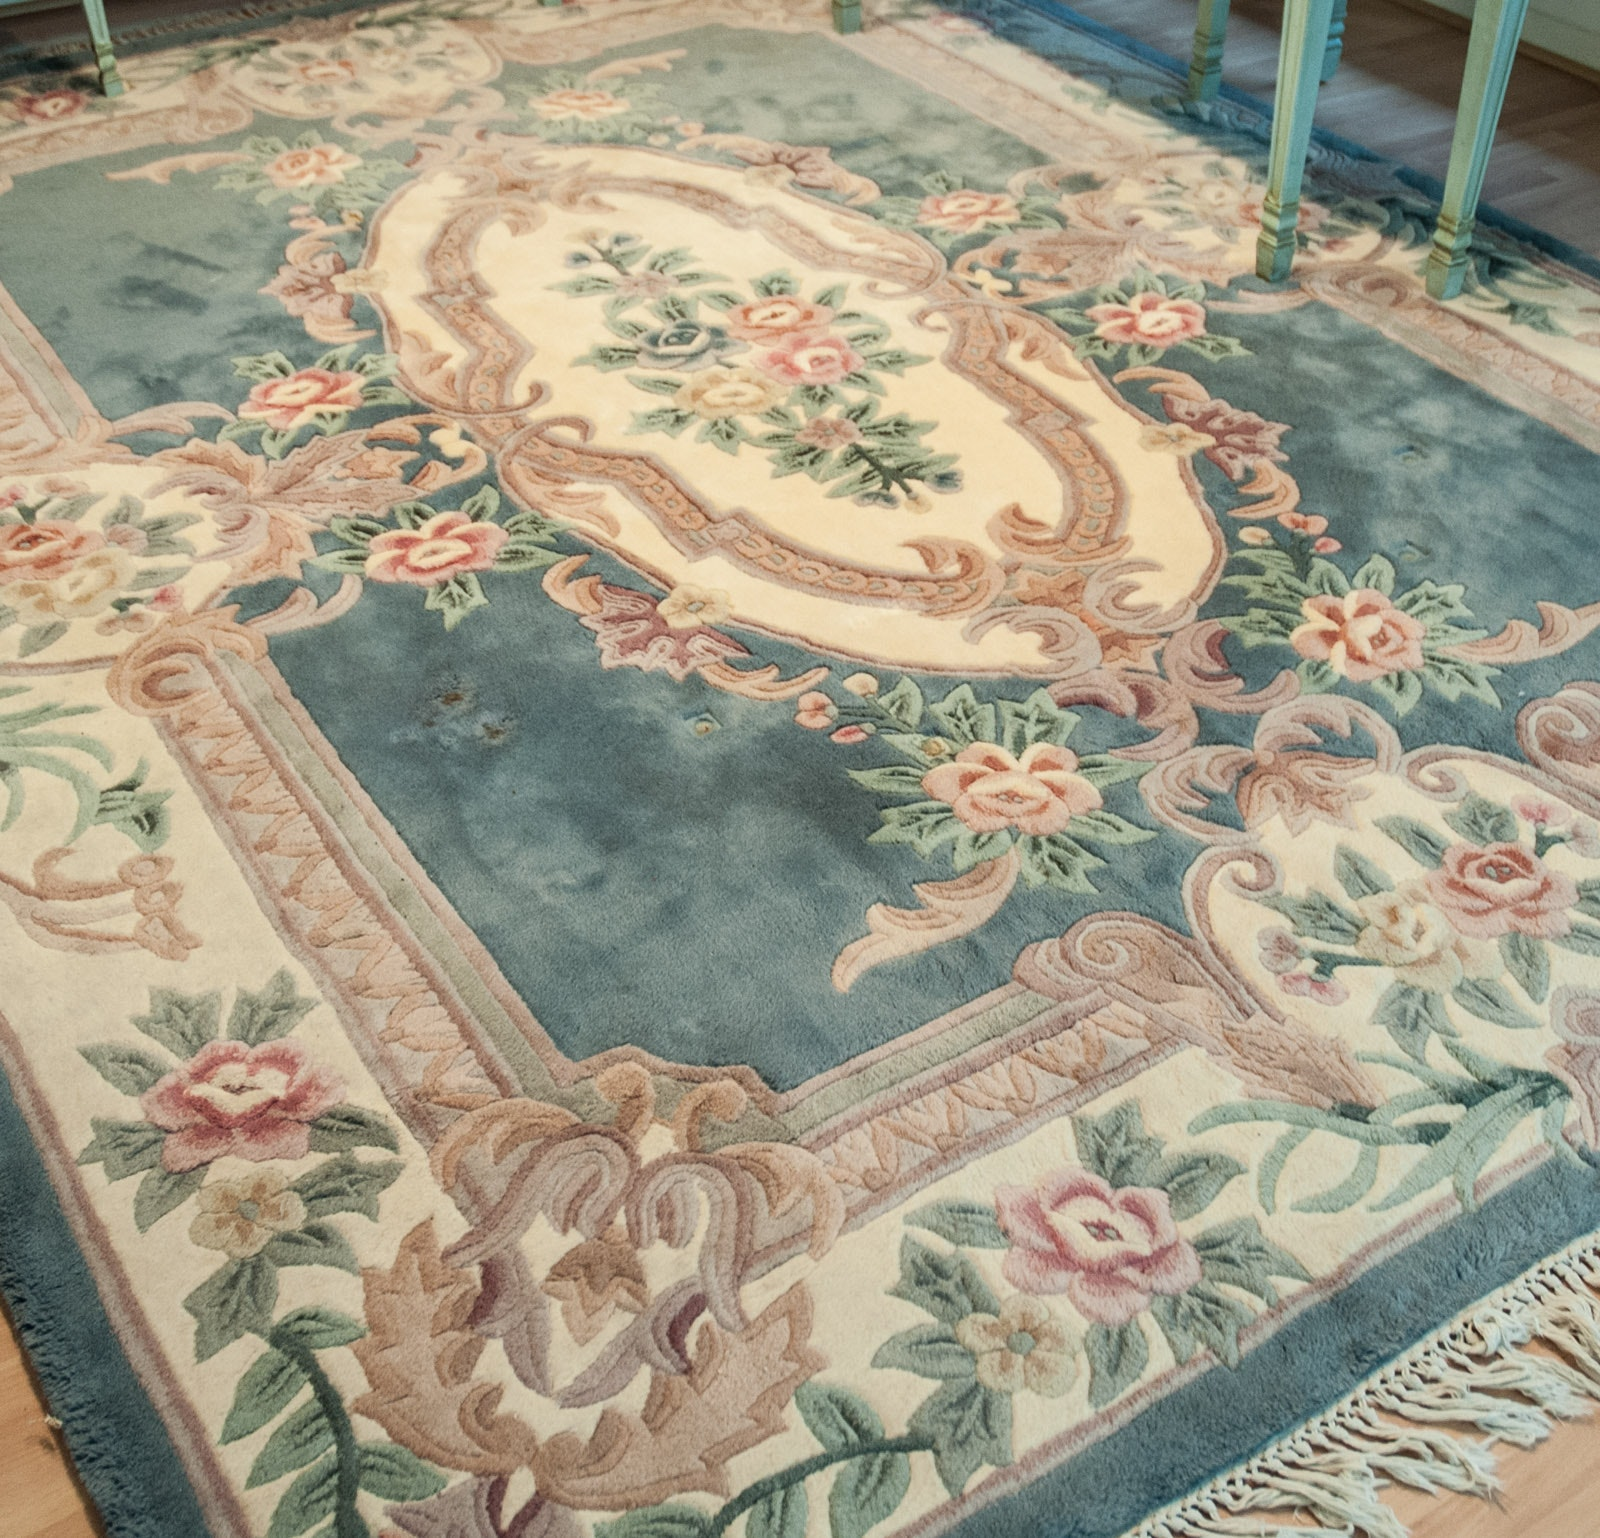 Tufted and Carved Wool Pile Savonnerie-Style Area Rug